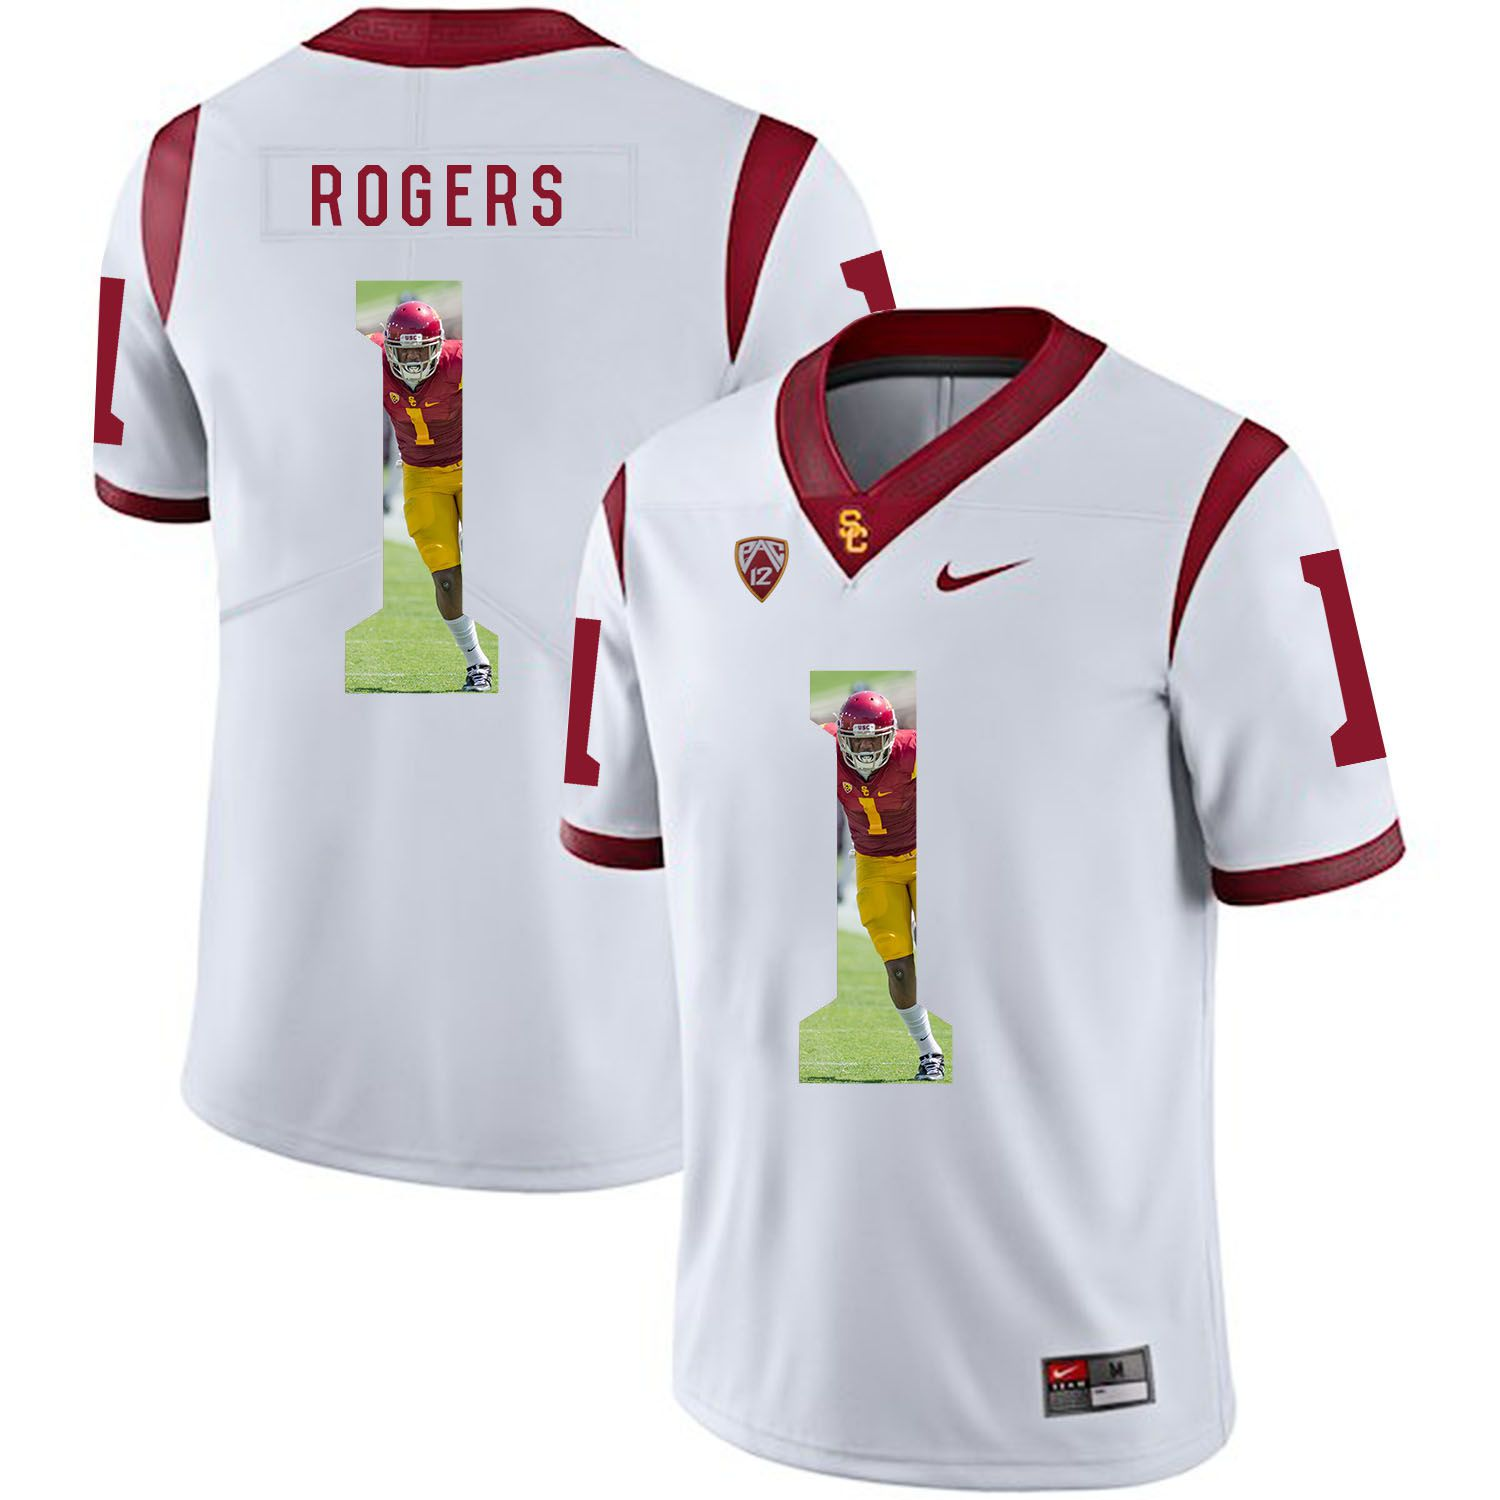 Men USC Trojans 1 Rogers White Fashion Edition Customized NCAA Jerseys